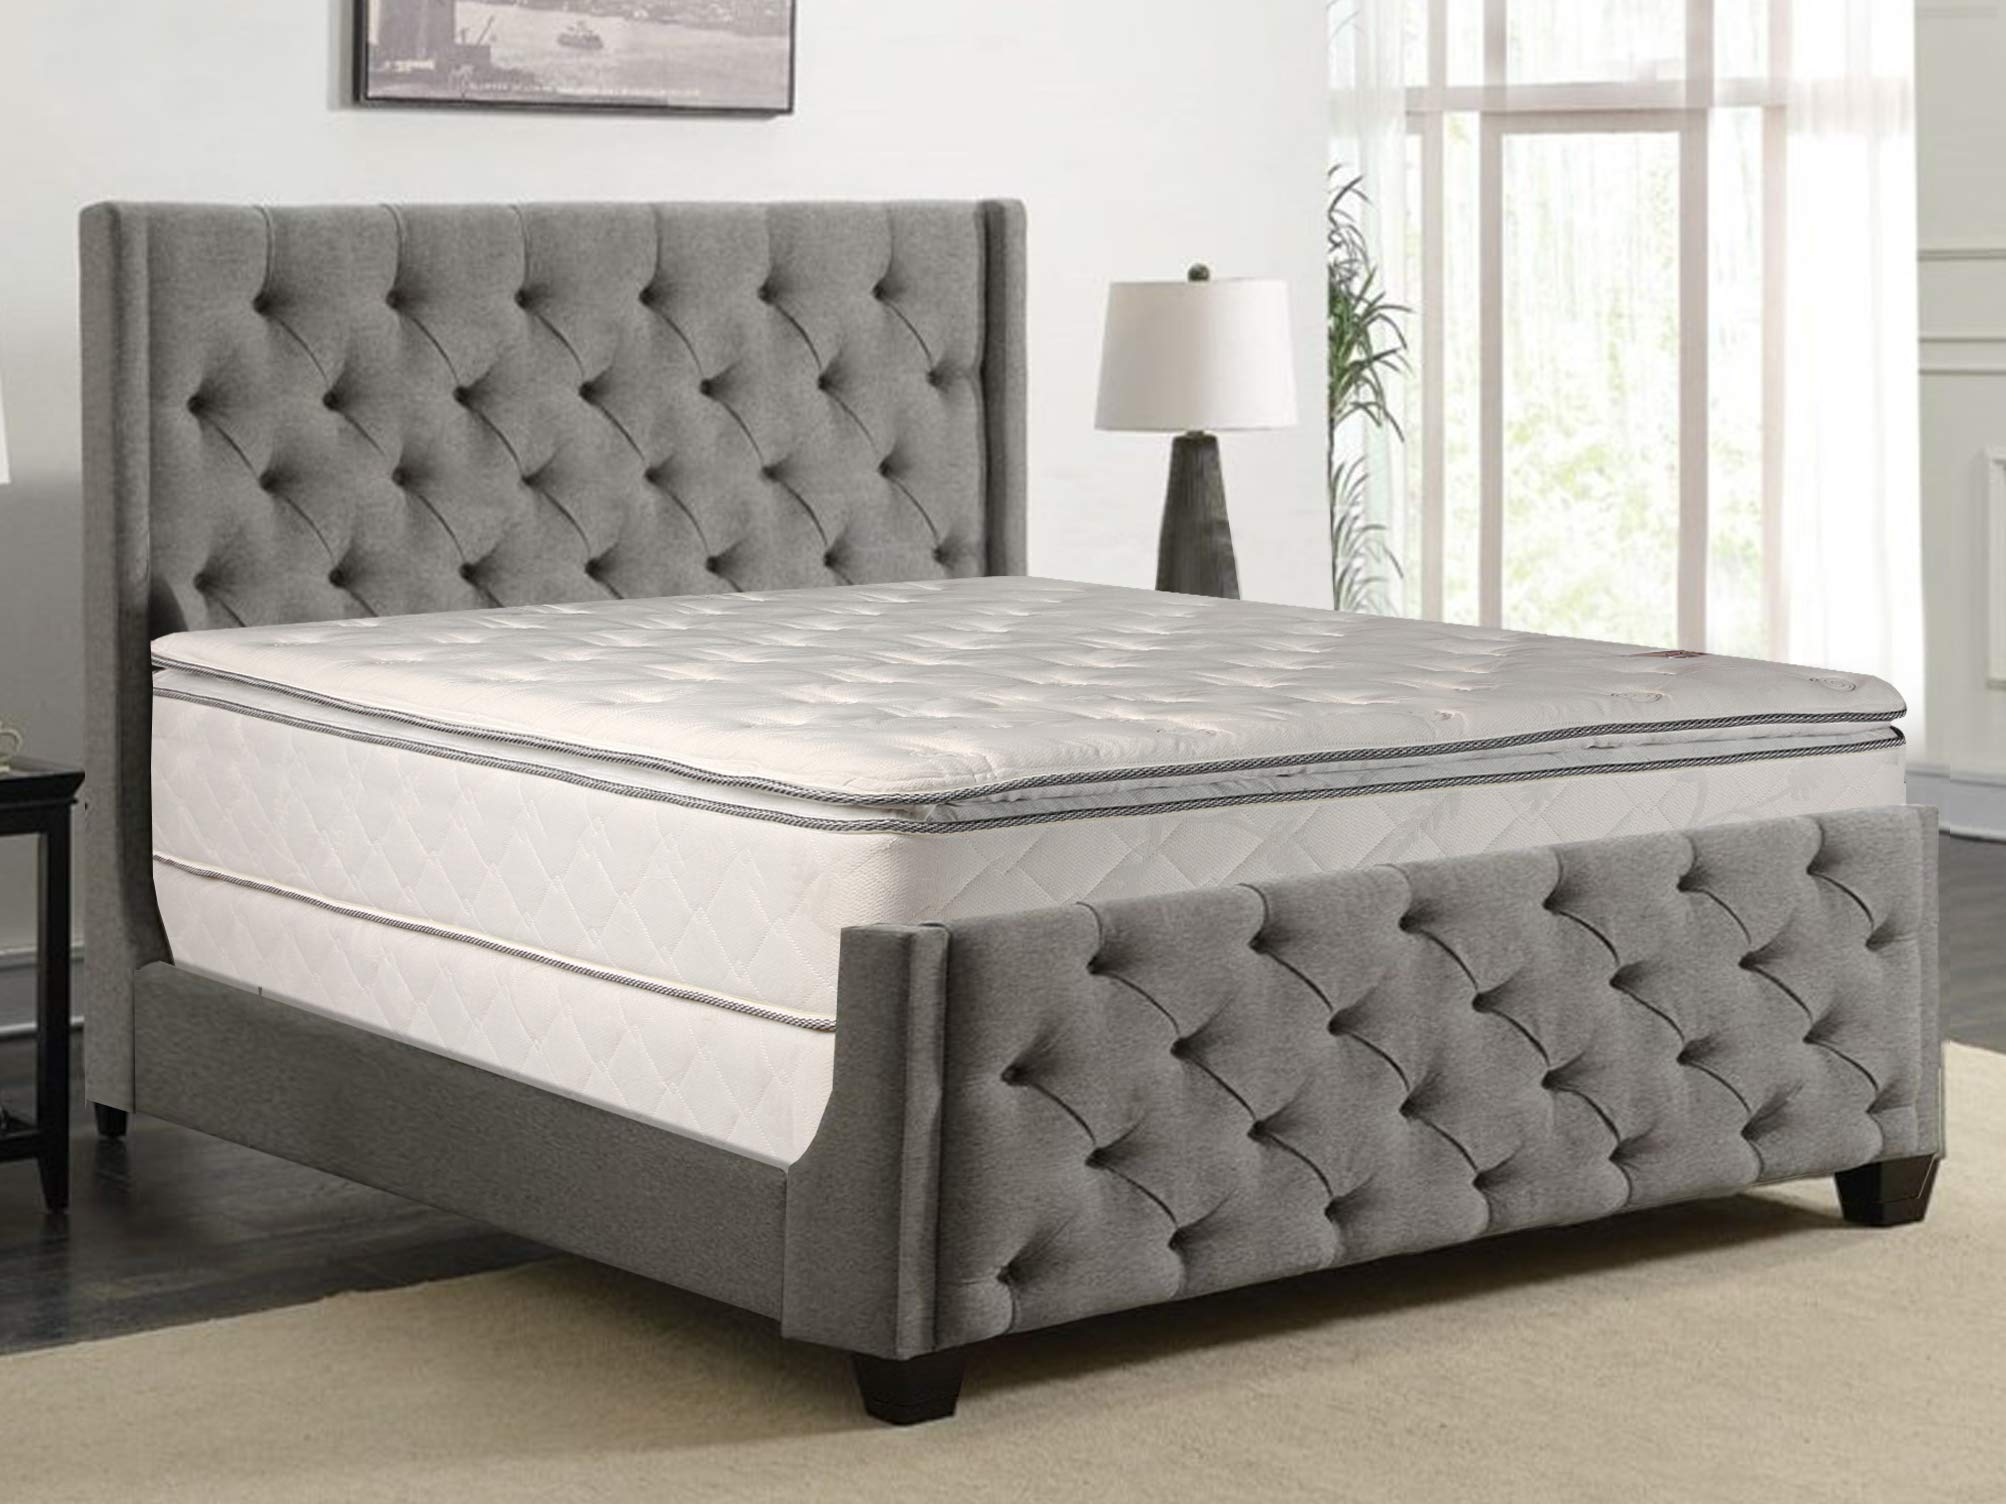 Greaton 301vF-3/8-3LP Fully Assembled 4-Inch Low Profile Wood BoxSpring/Foundation for Mattress with Frame 44 by Greaton